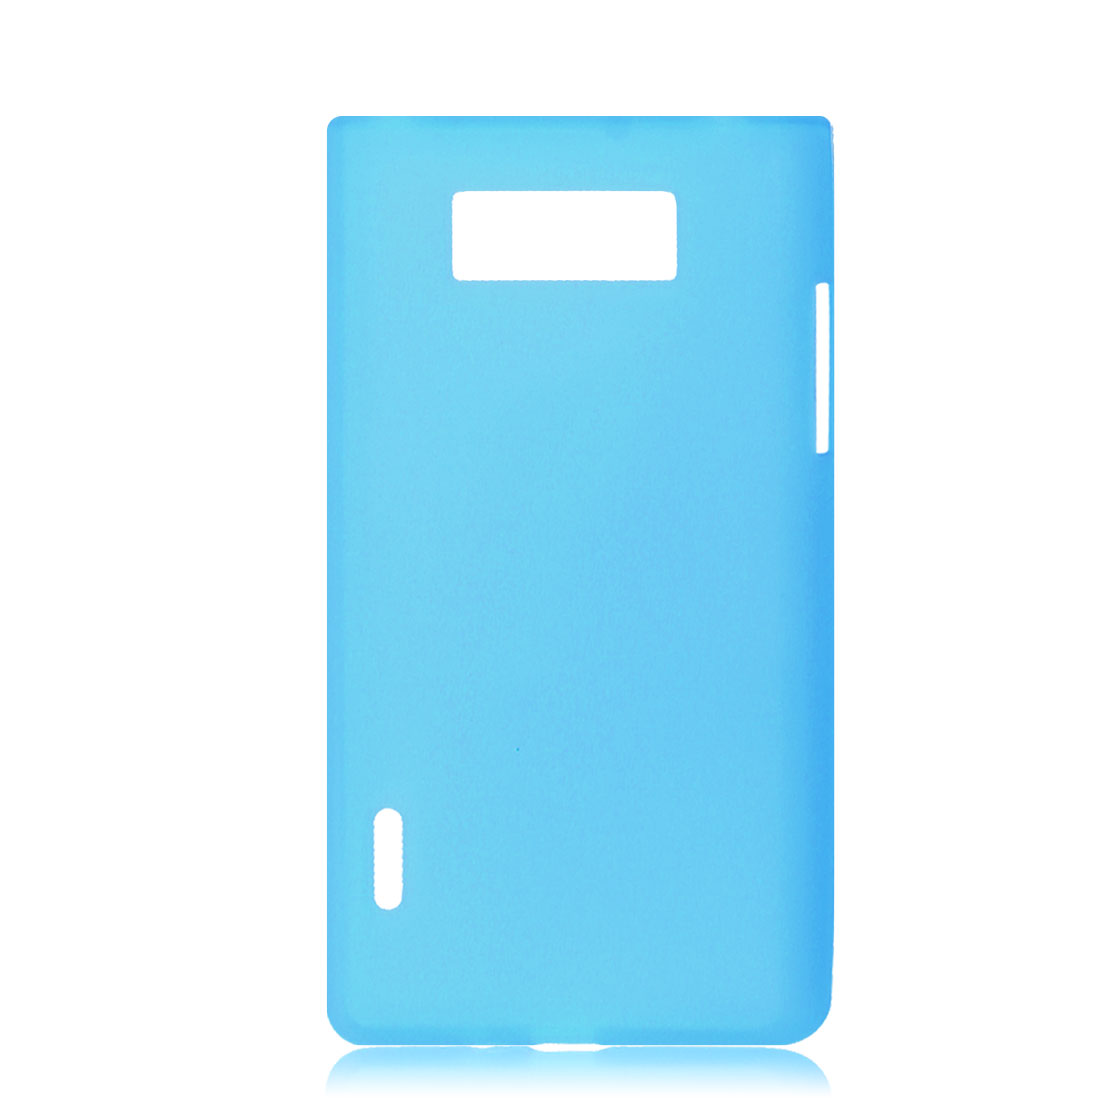 Sky Blue Soft Plastic Case Cover Protector Shell for LG Optimus L7 P700/P705